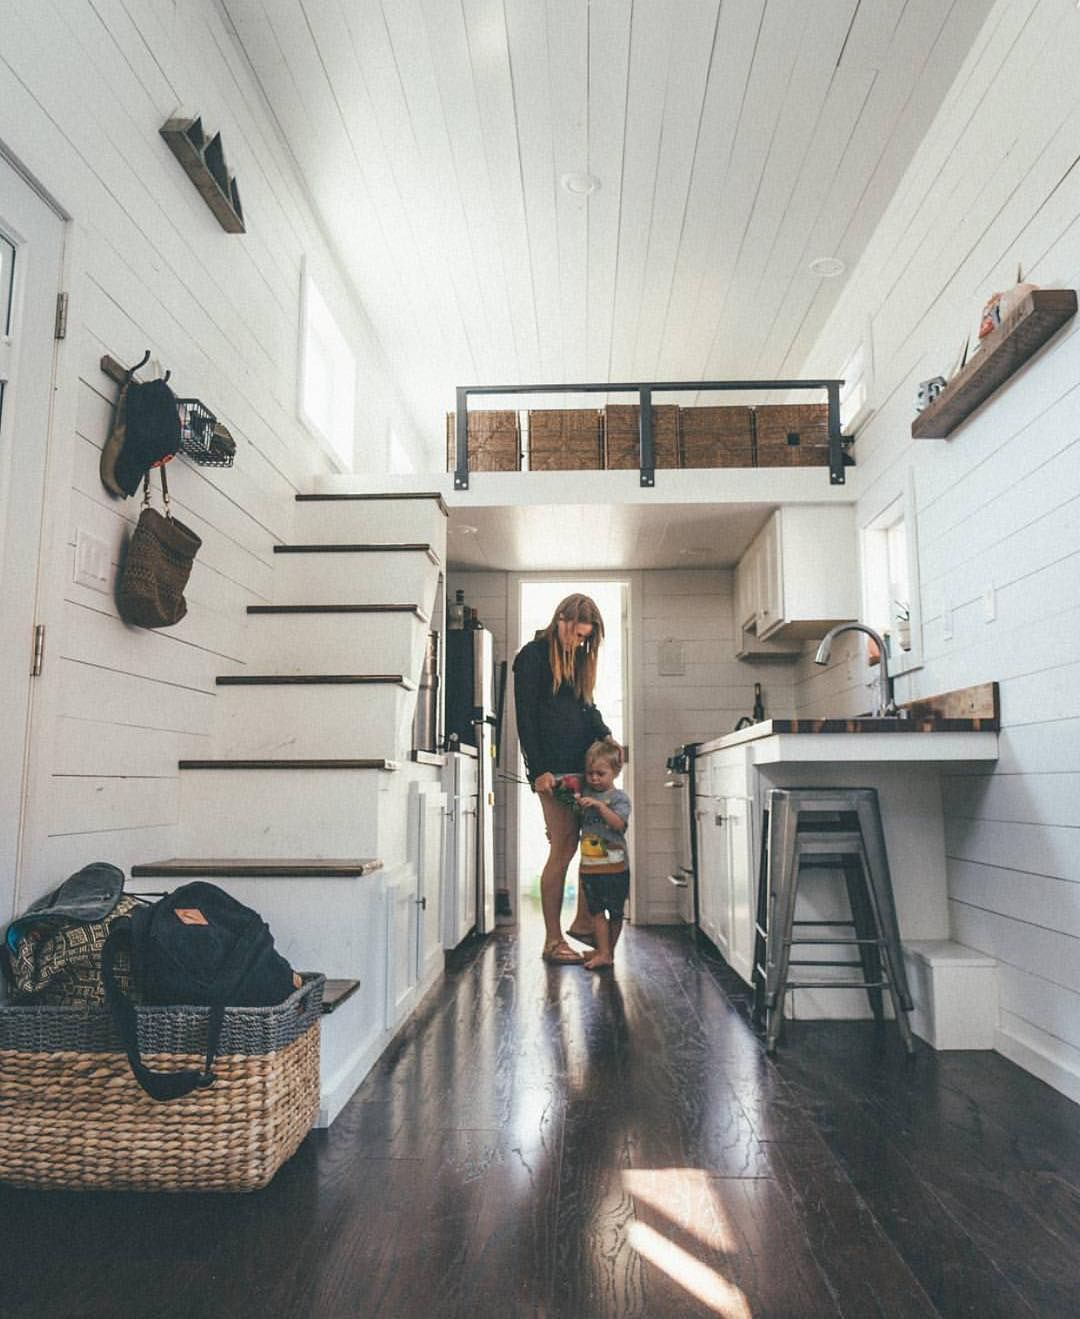 A Family Living In A Tiny Home Small House Big Love Tinyhousefamily Tiny House Australia Tiny House Family Tiny House Big Living